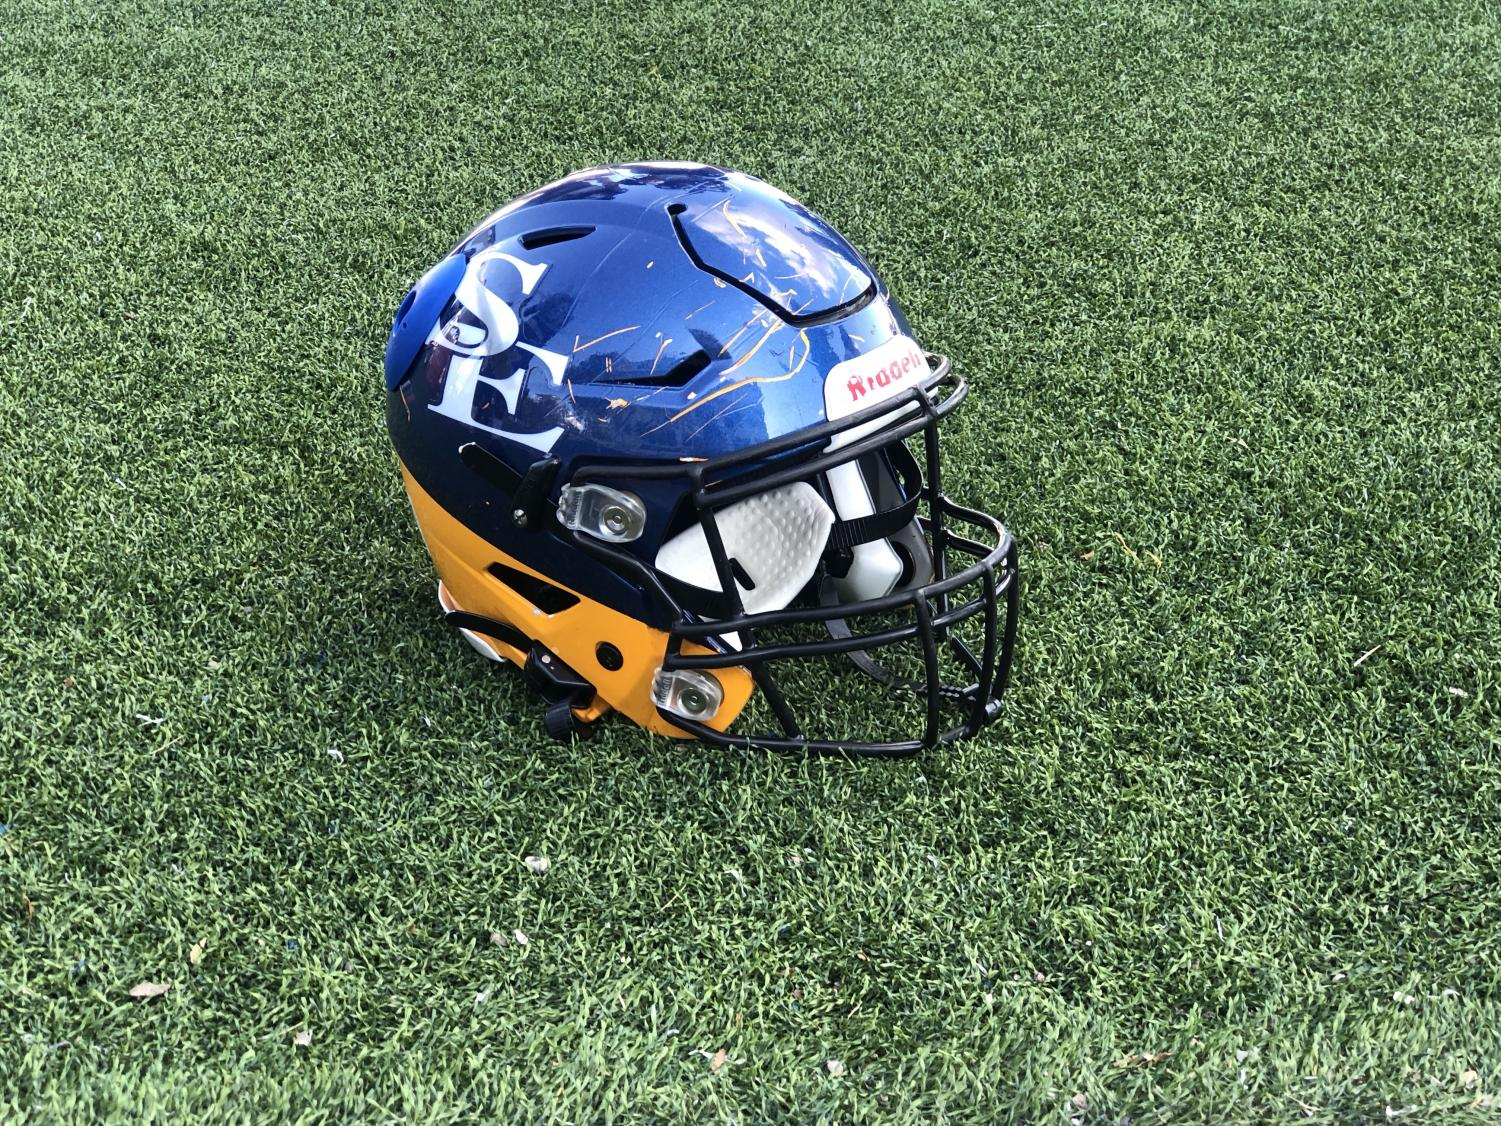 Unlike our current Southeastern football helmets, the helmet James created is exactly like a standard football helmet, but is completely see through, which is meant to showcase the individual wearing it.